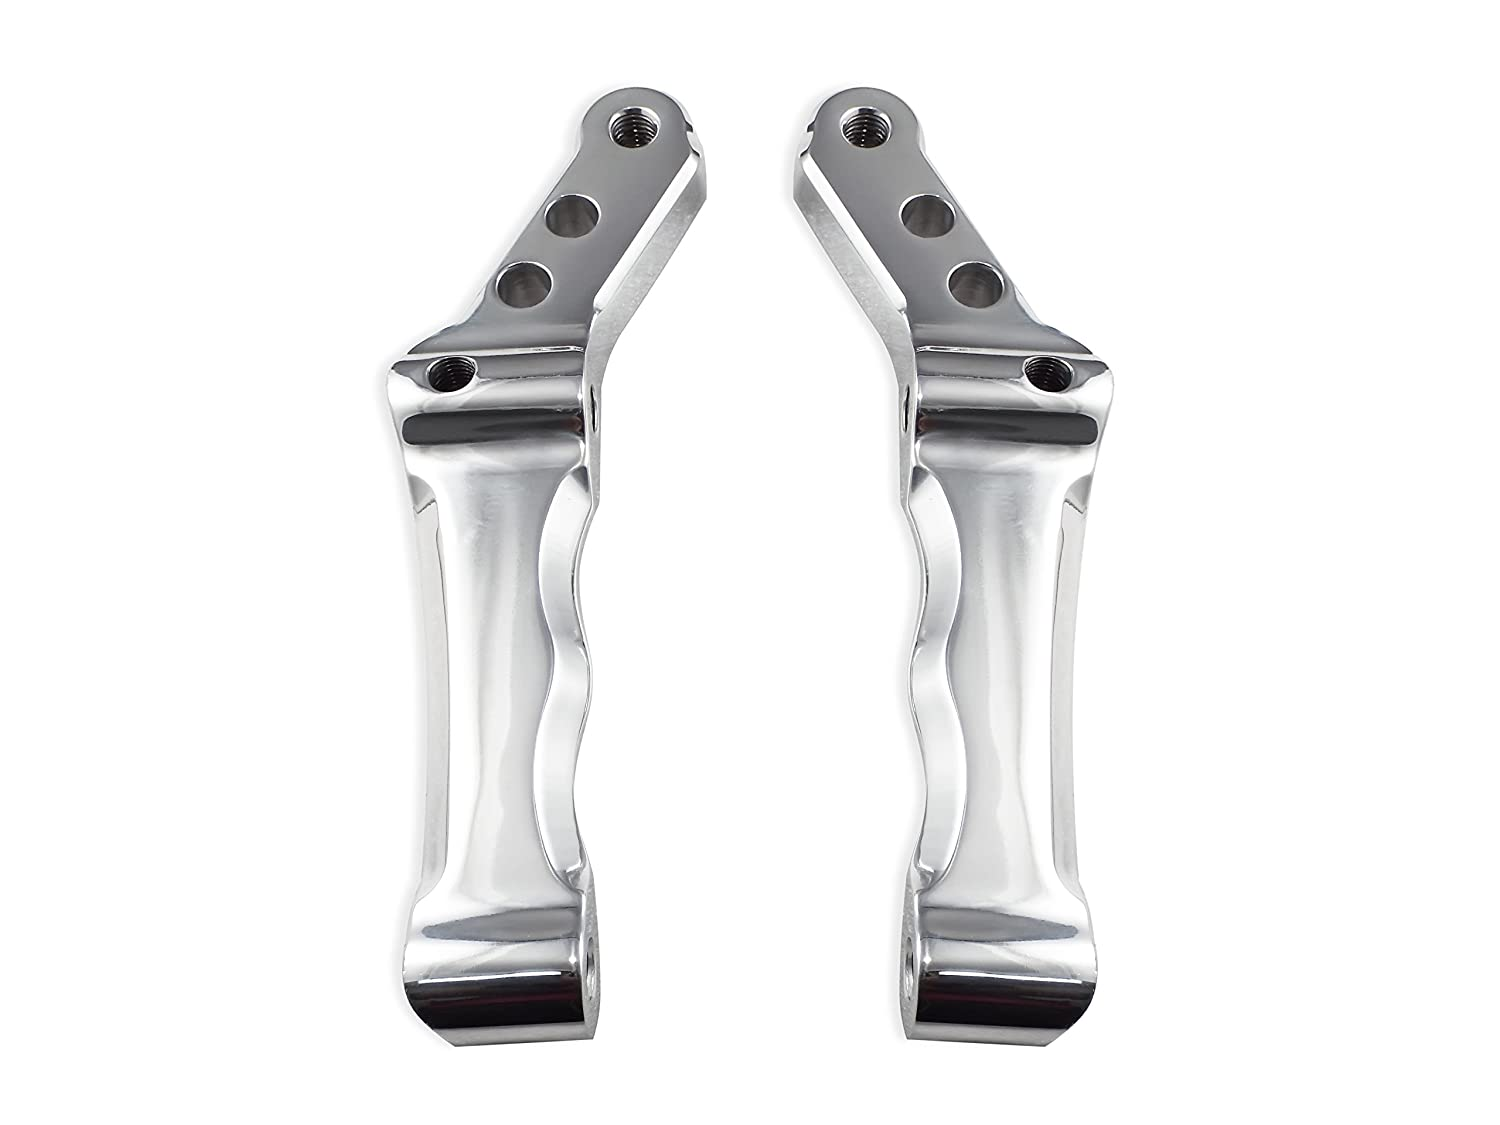 Bagger Brothers BB-RBCM-2P Polished Radial Caliper Mount (for Harley  Davidson Models with Dual Disk/Fits 1996-2013 Touring/Dyna/Softail)